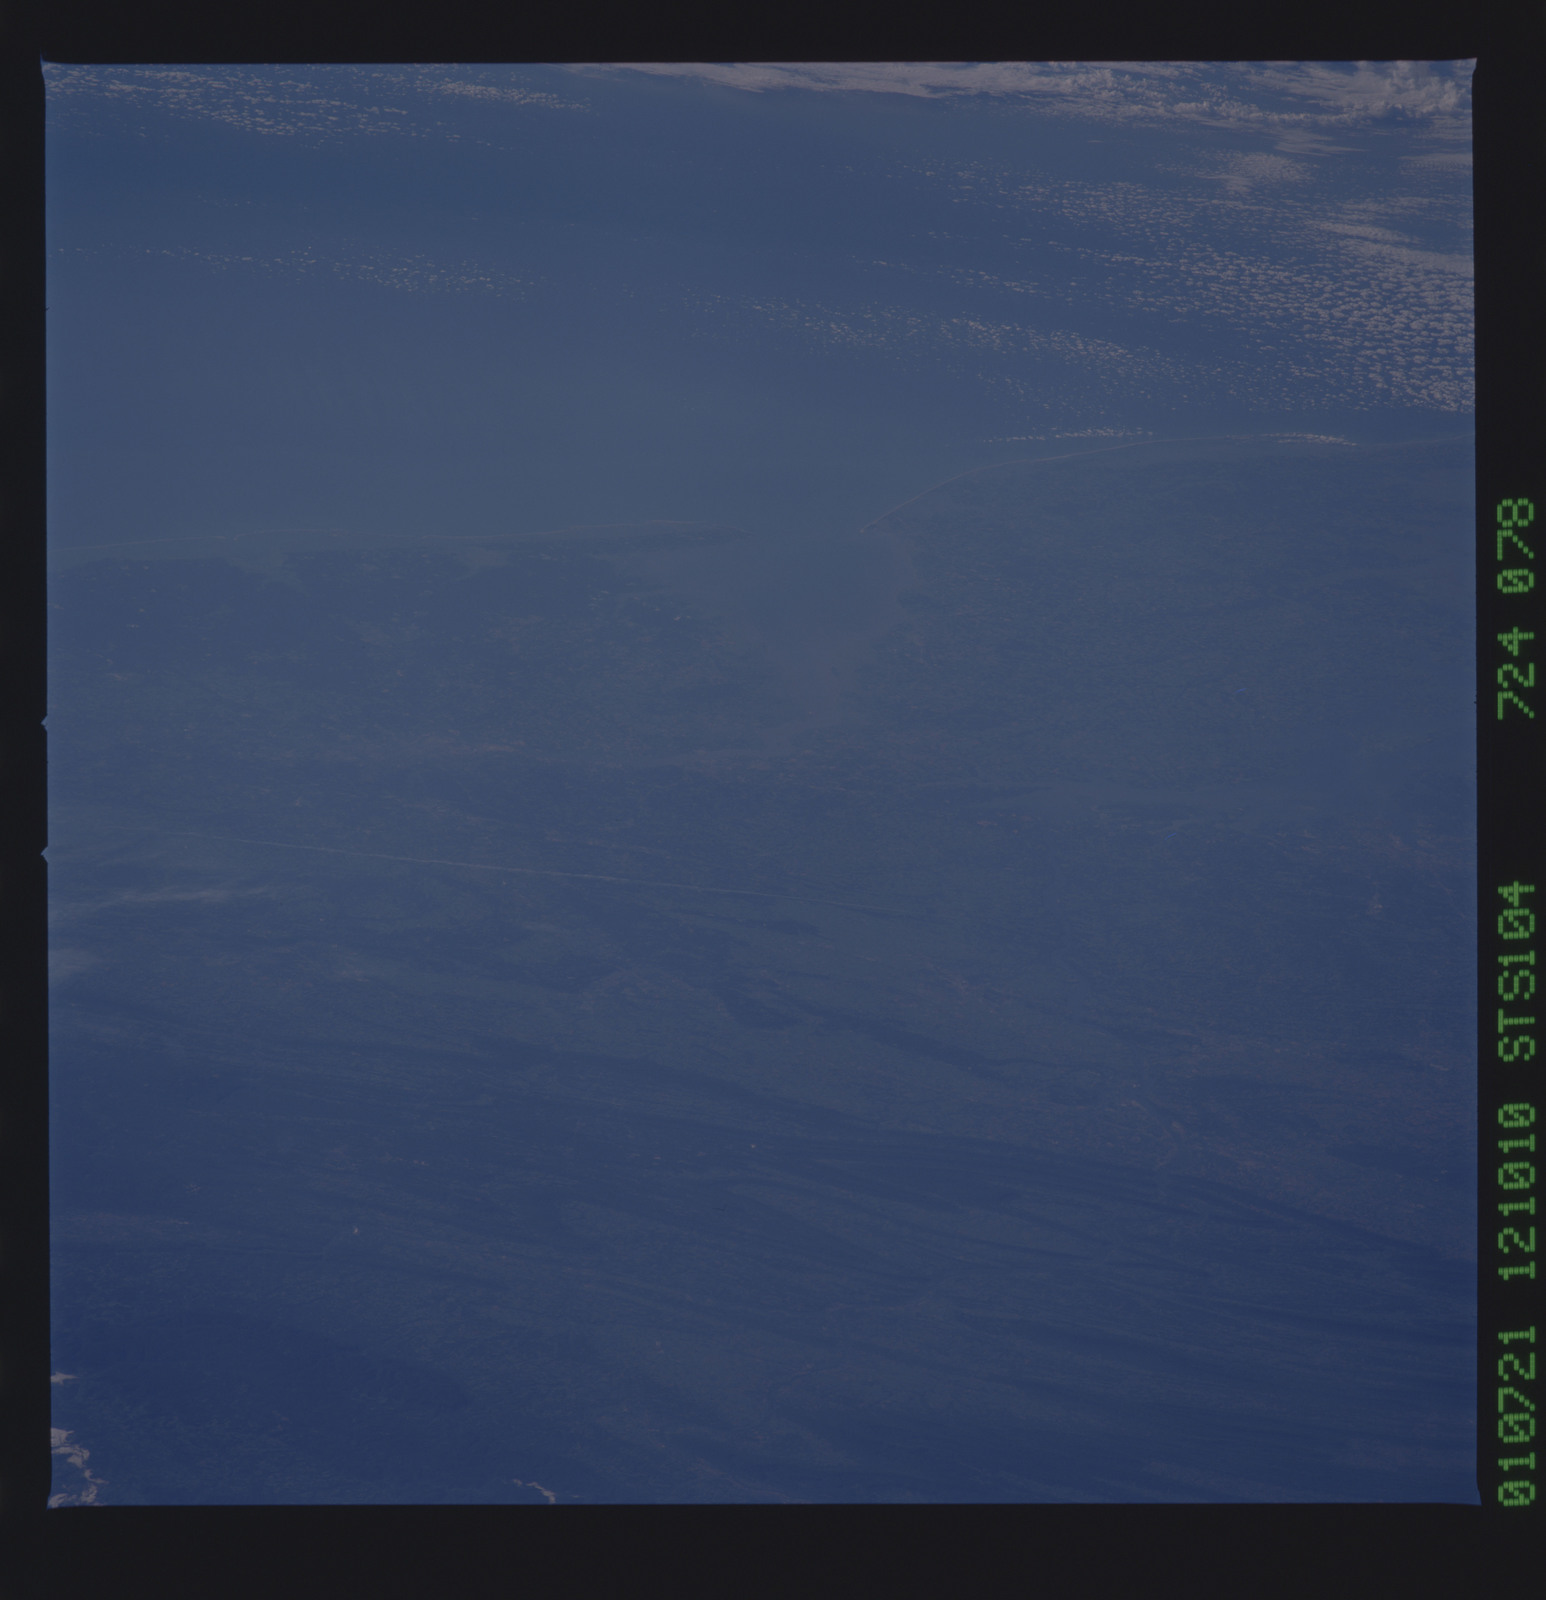 STS104-724-078 - STS-104 - Earth Observation taken by the STS-104 crew